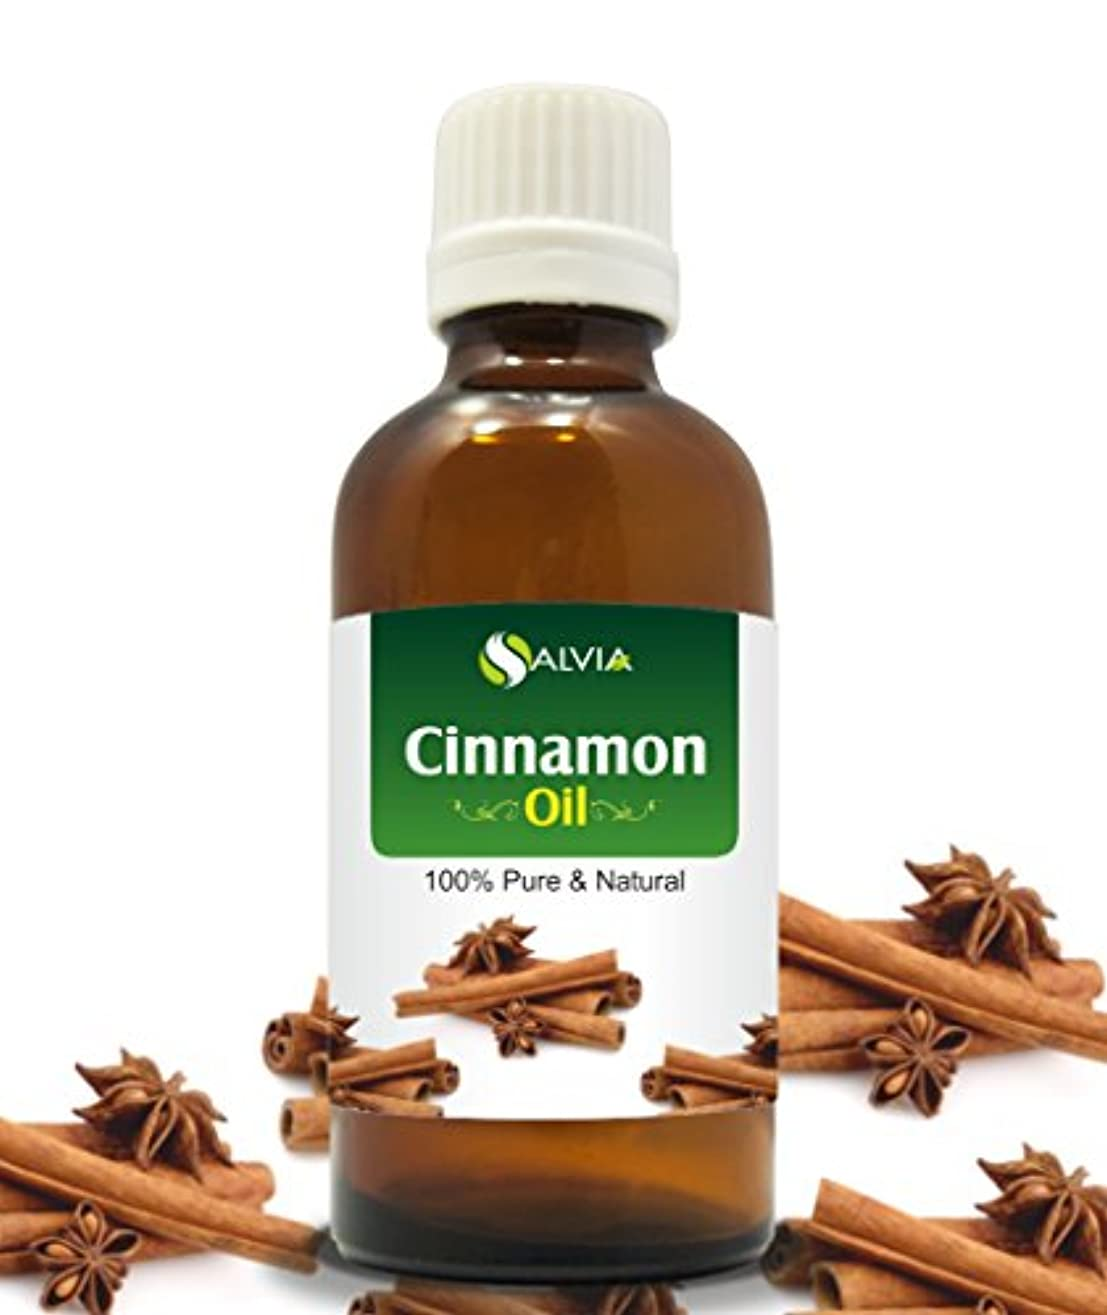 変換圧縮されたからかうCINNAMON OIL 100% NATURAL PURE UNDILUTED UNCUT ESSENTIAL OIL 30ML